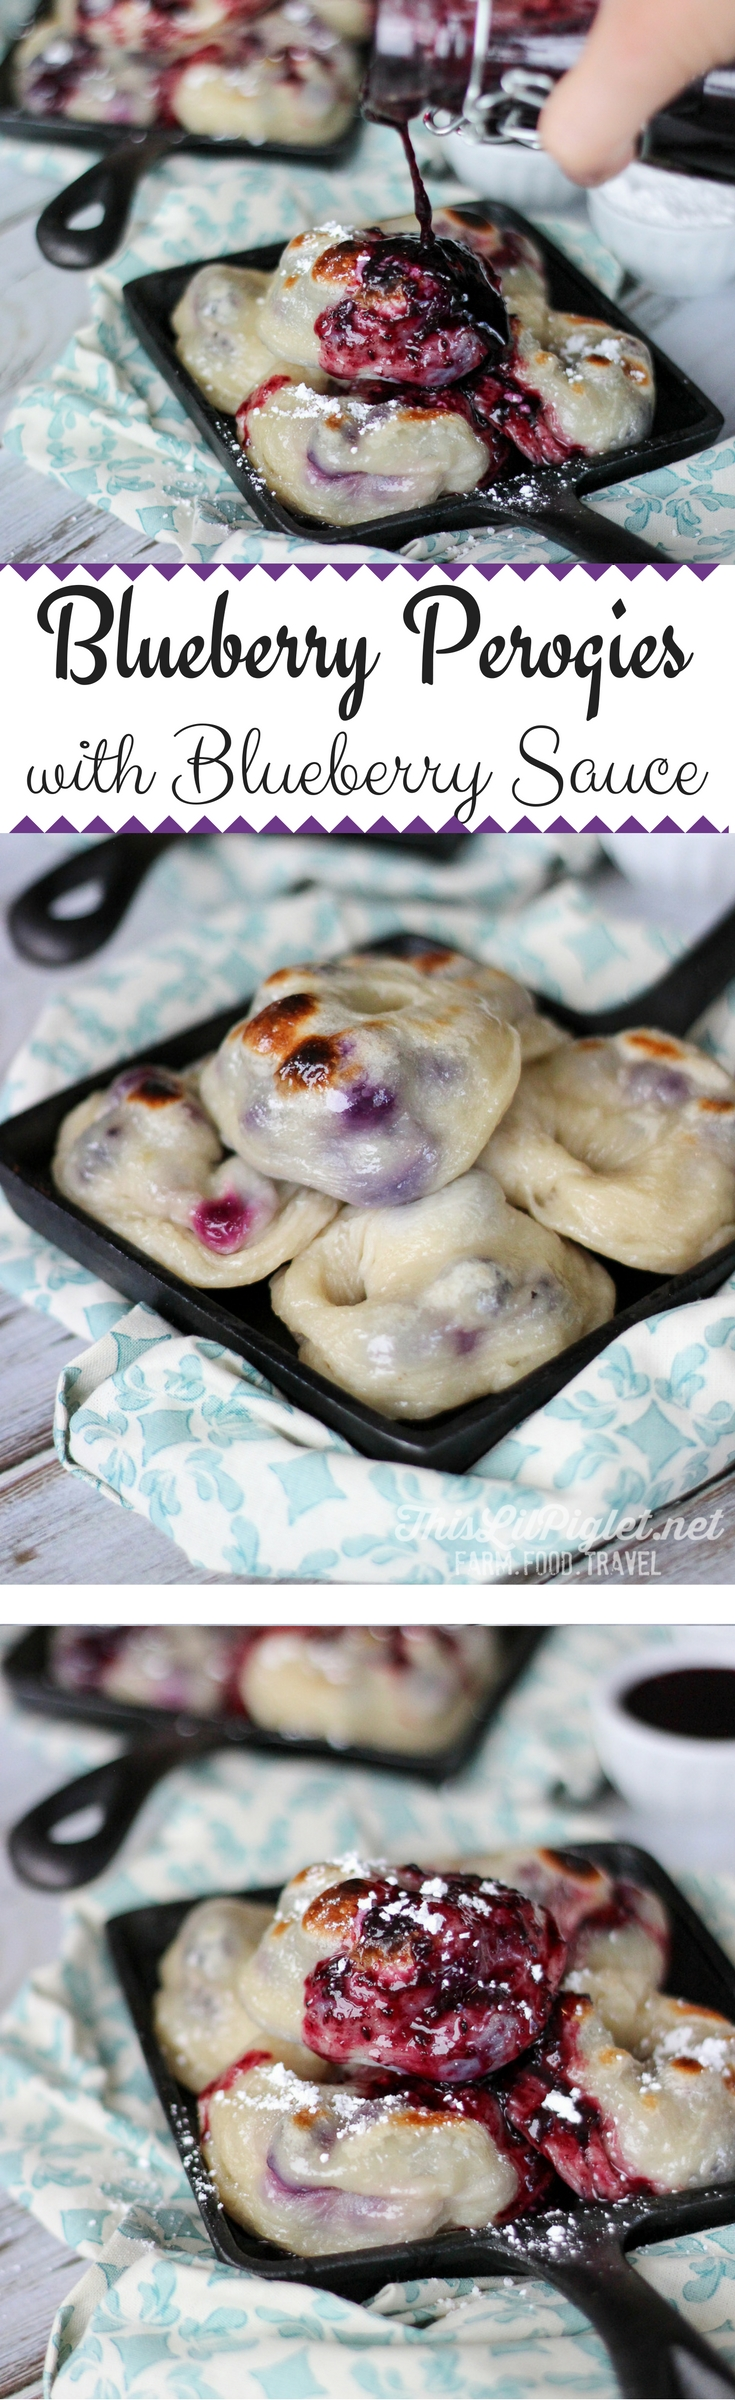 Blueberry Perogies with Blueberry Sauce // thislilpiglet.net